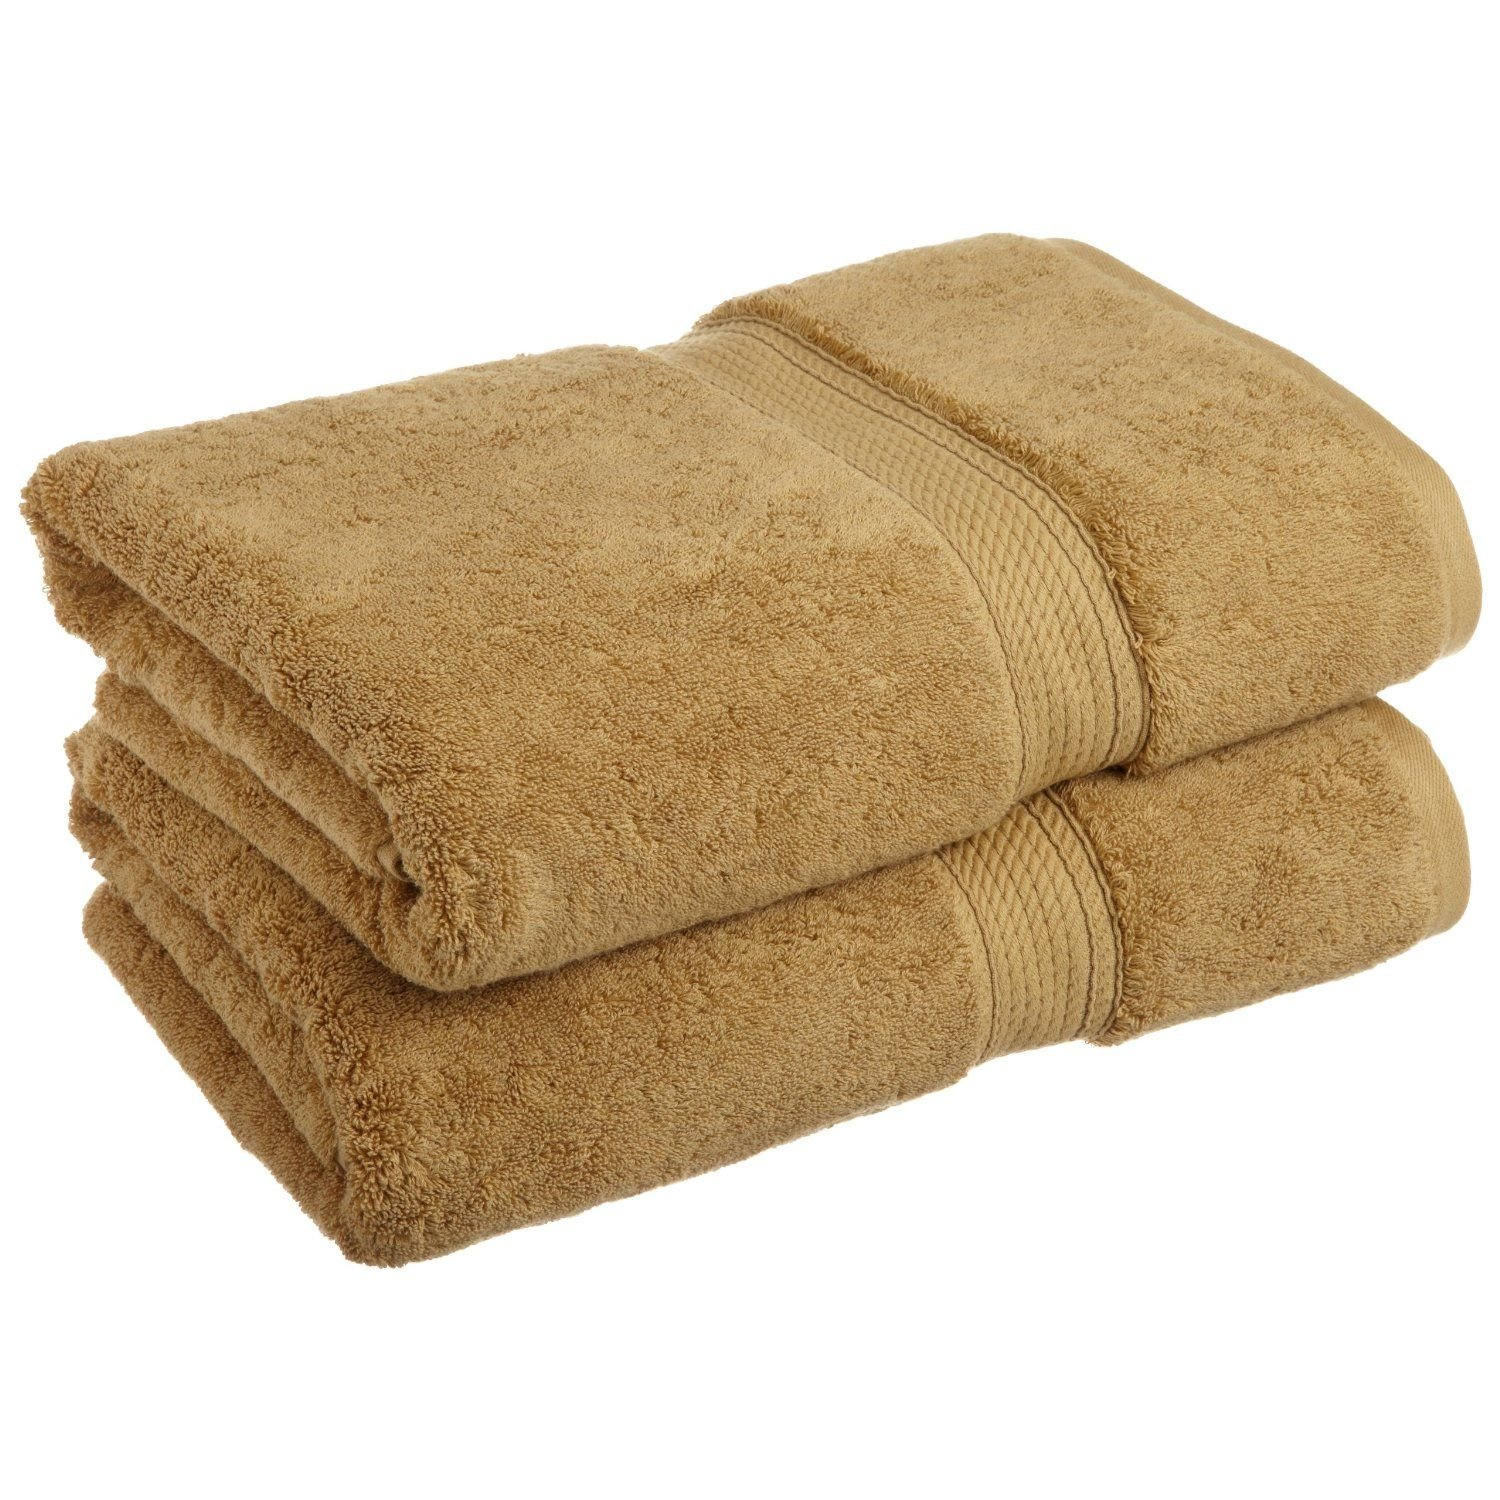 Superior 900 GSM Luxury Bathroom Towels, Made of 100% Premium Long-Staple Combed Cotton, Set of 2 Hotel & Spa Quality Bath Towels - Toast, 30'' x 55'' each